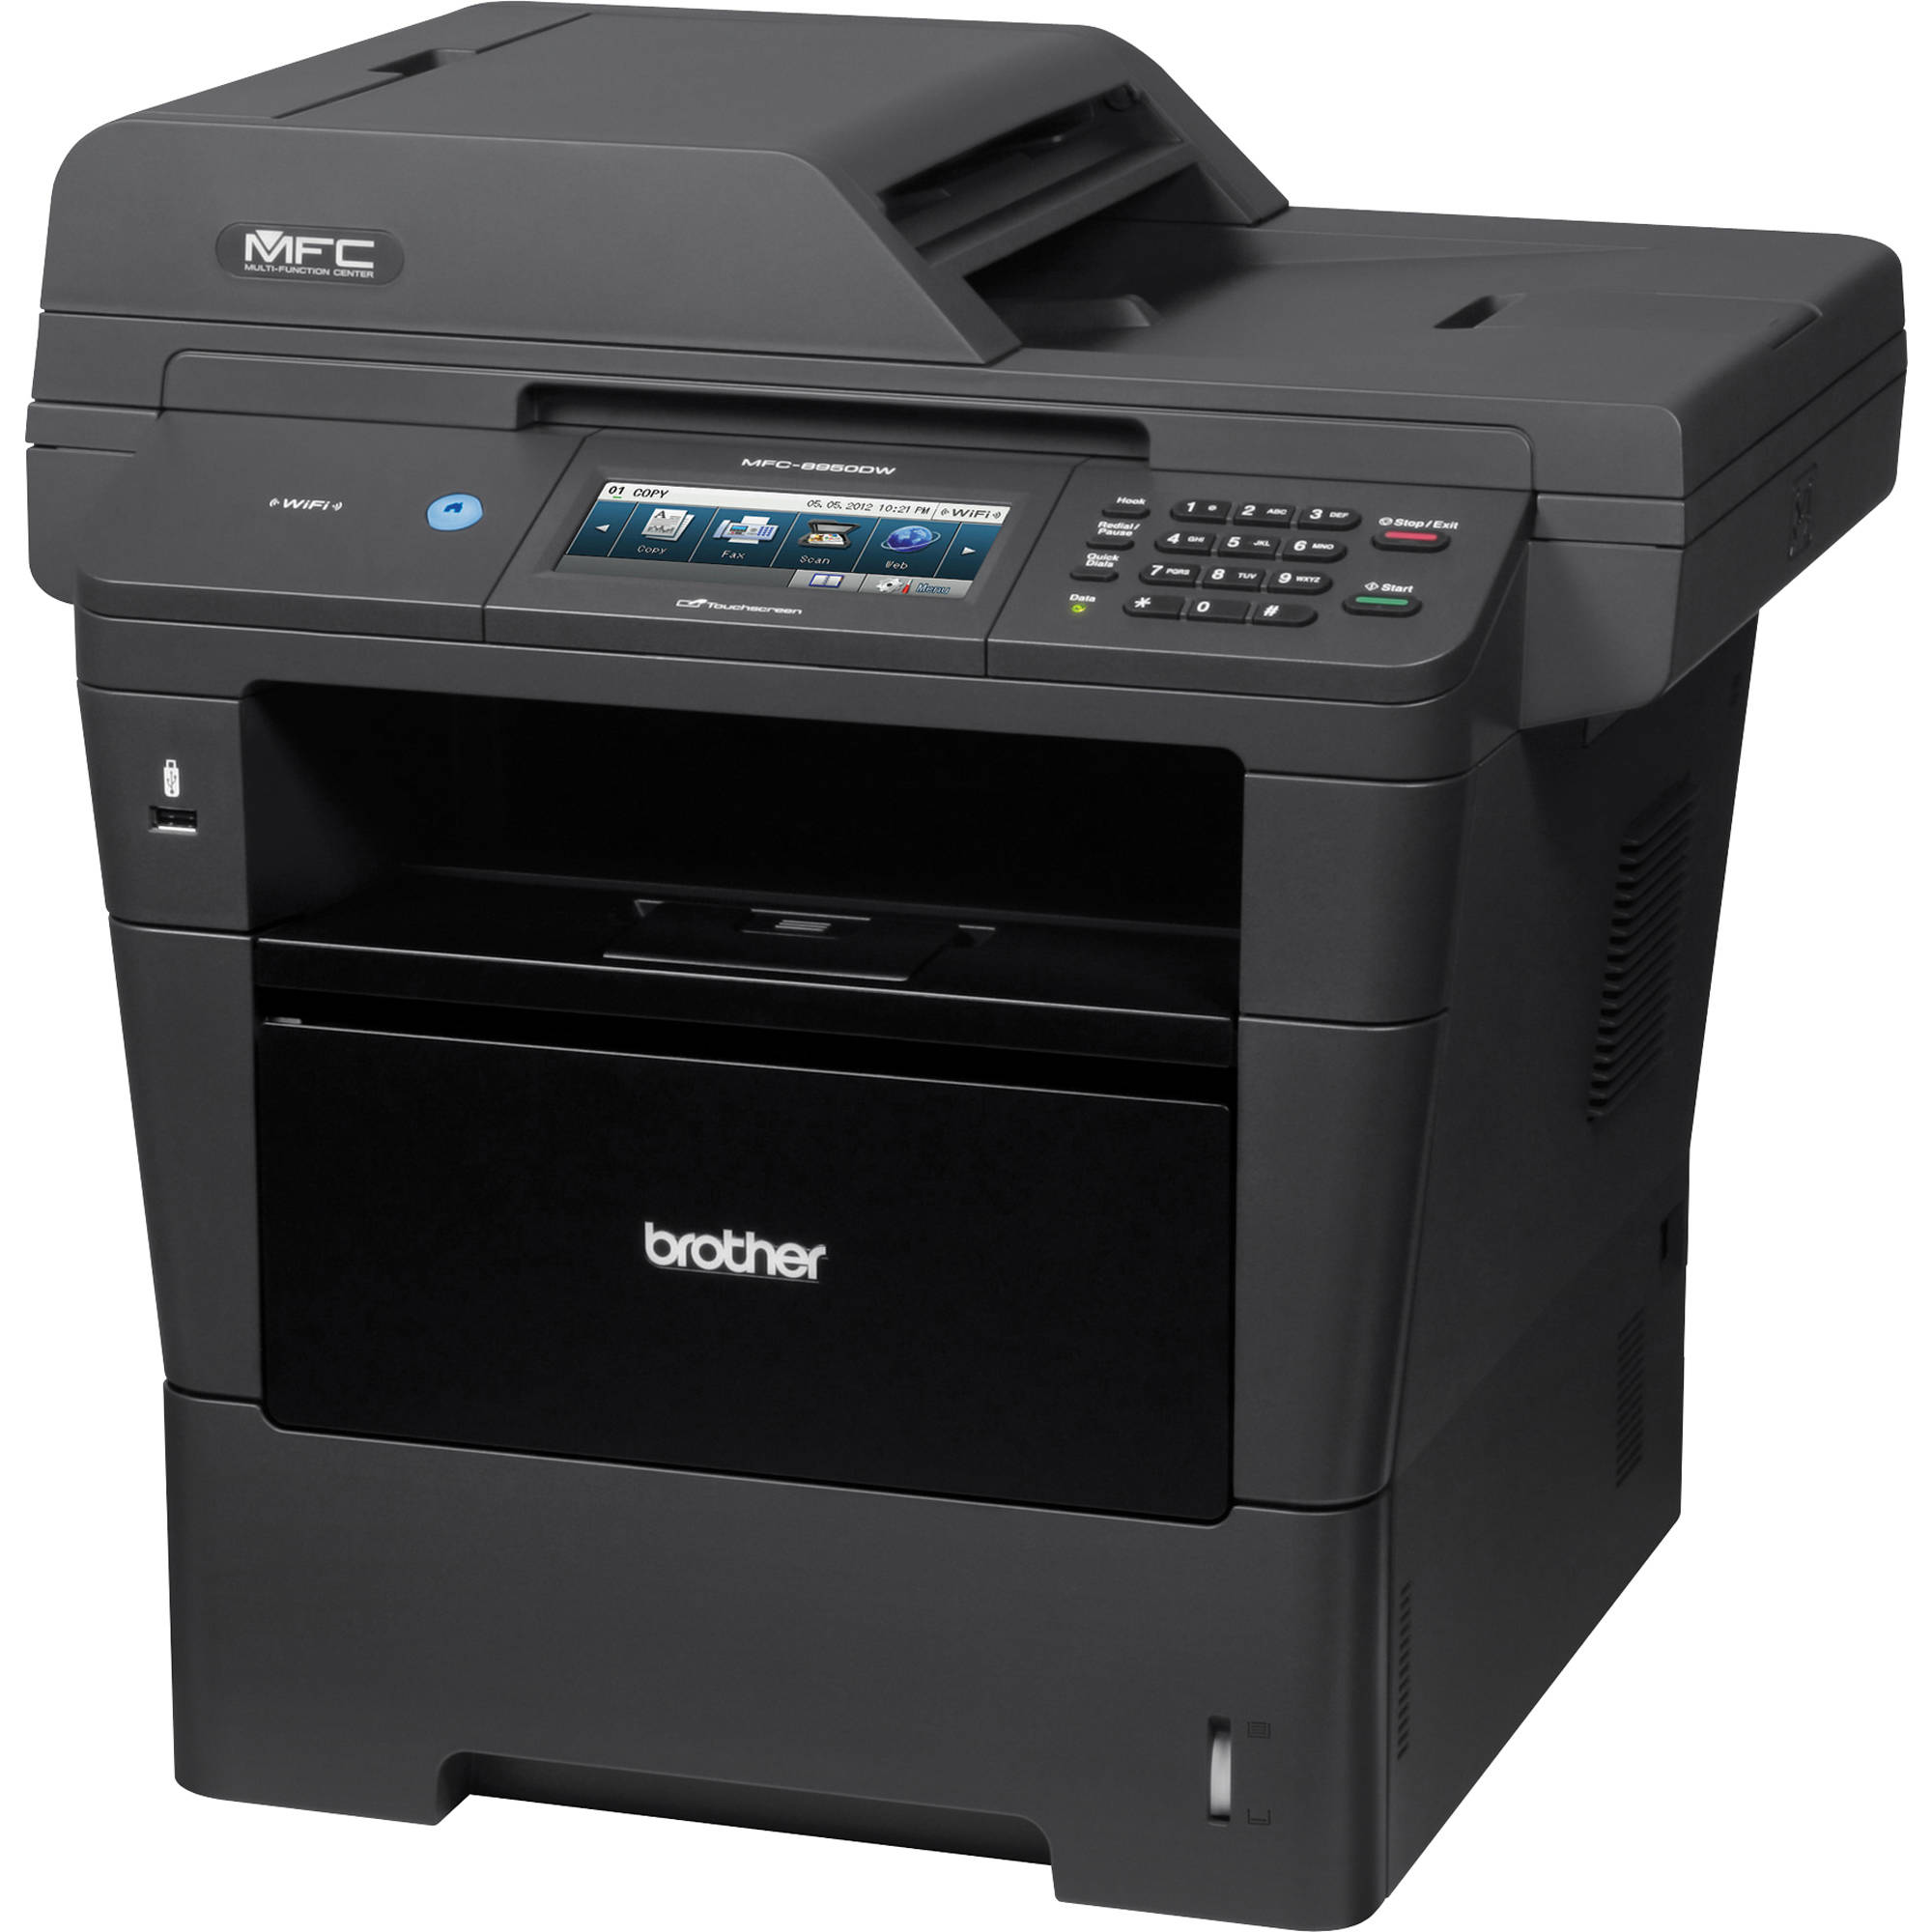 DOWNLOAD DRIVER: BROTHER MFC-8910DW XML PAPER SPECIFICATION PRINTER